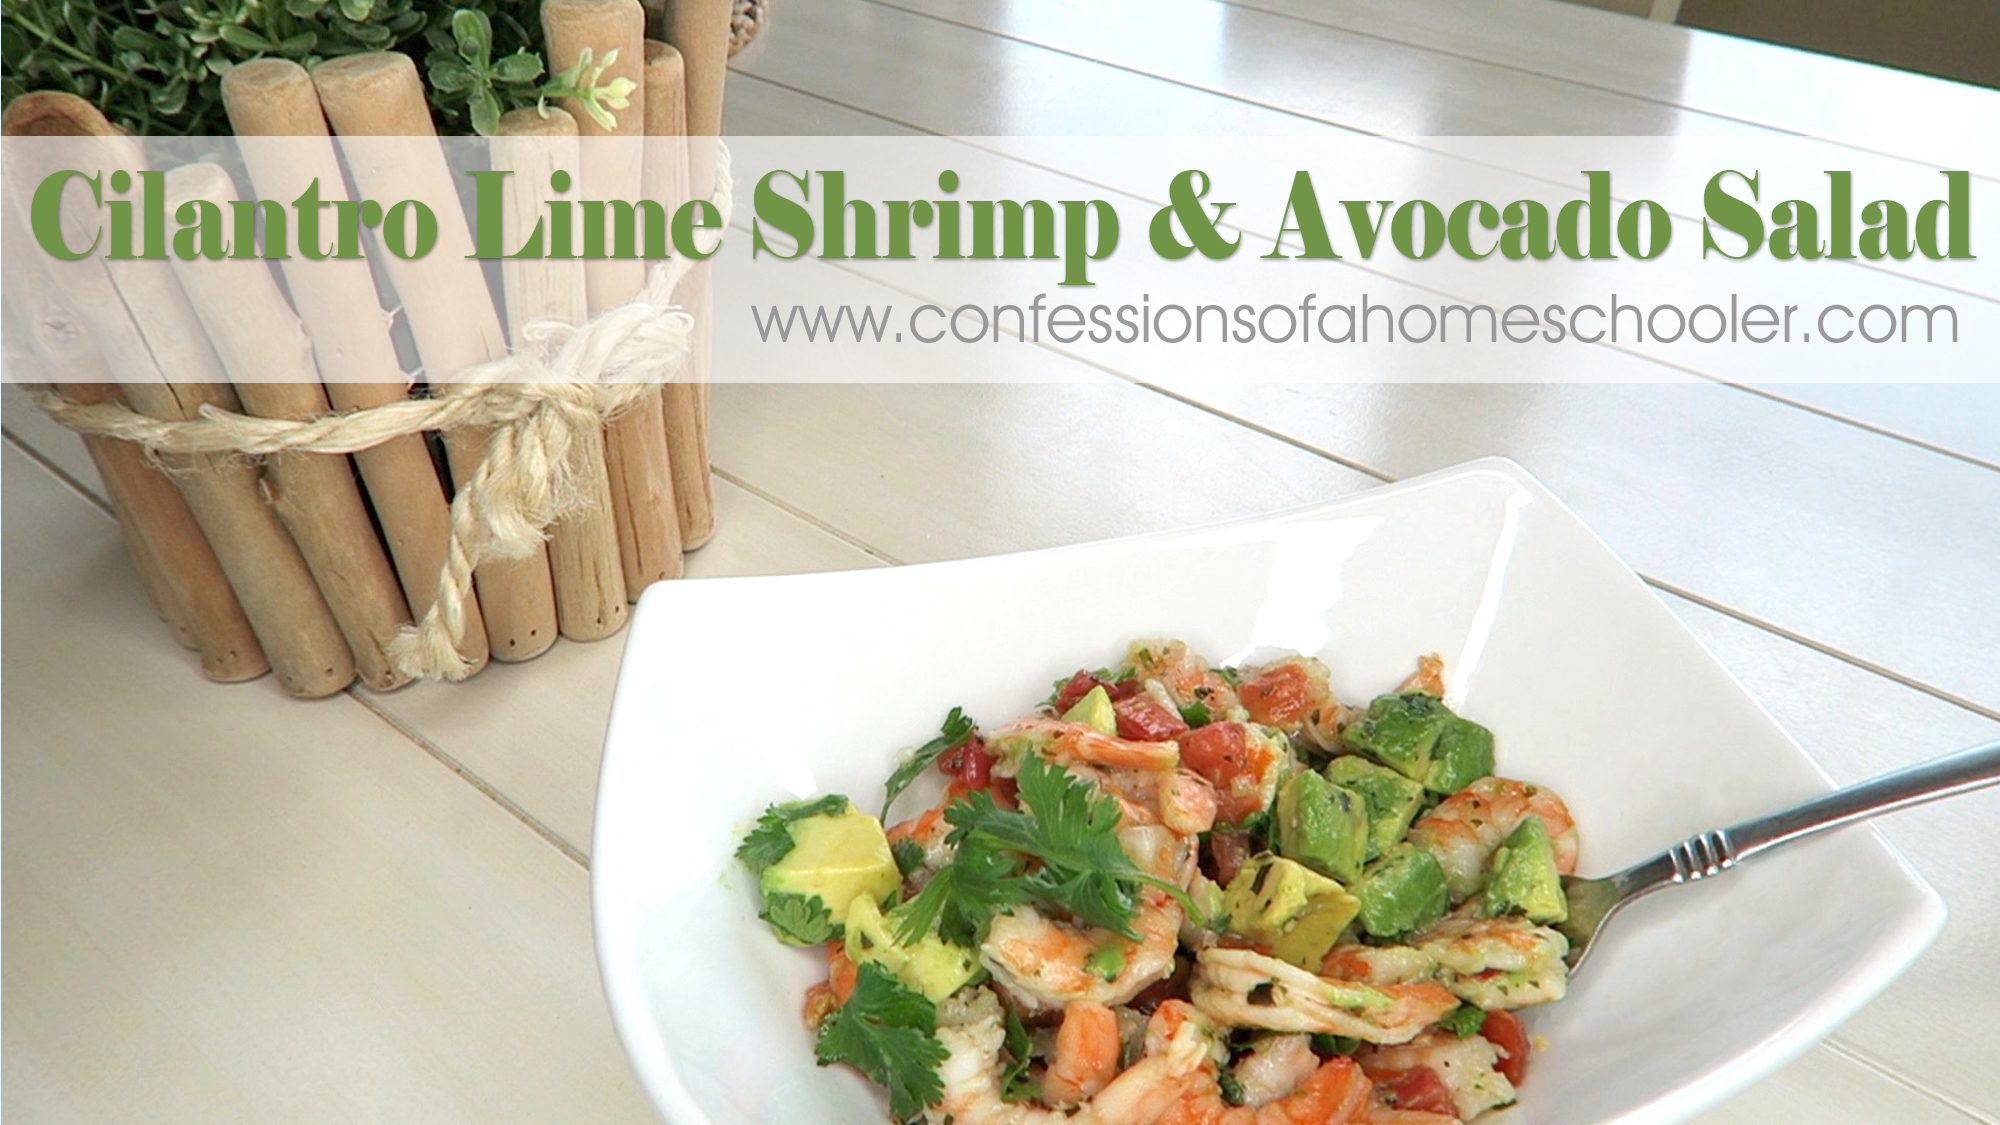 Cilantro Lime Shrimp & Avocado Salad Recipe